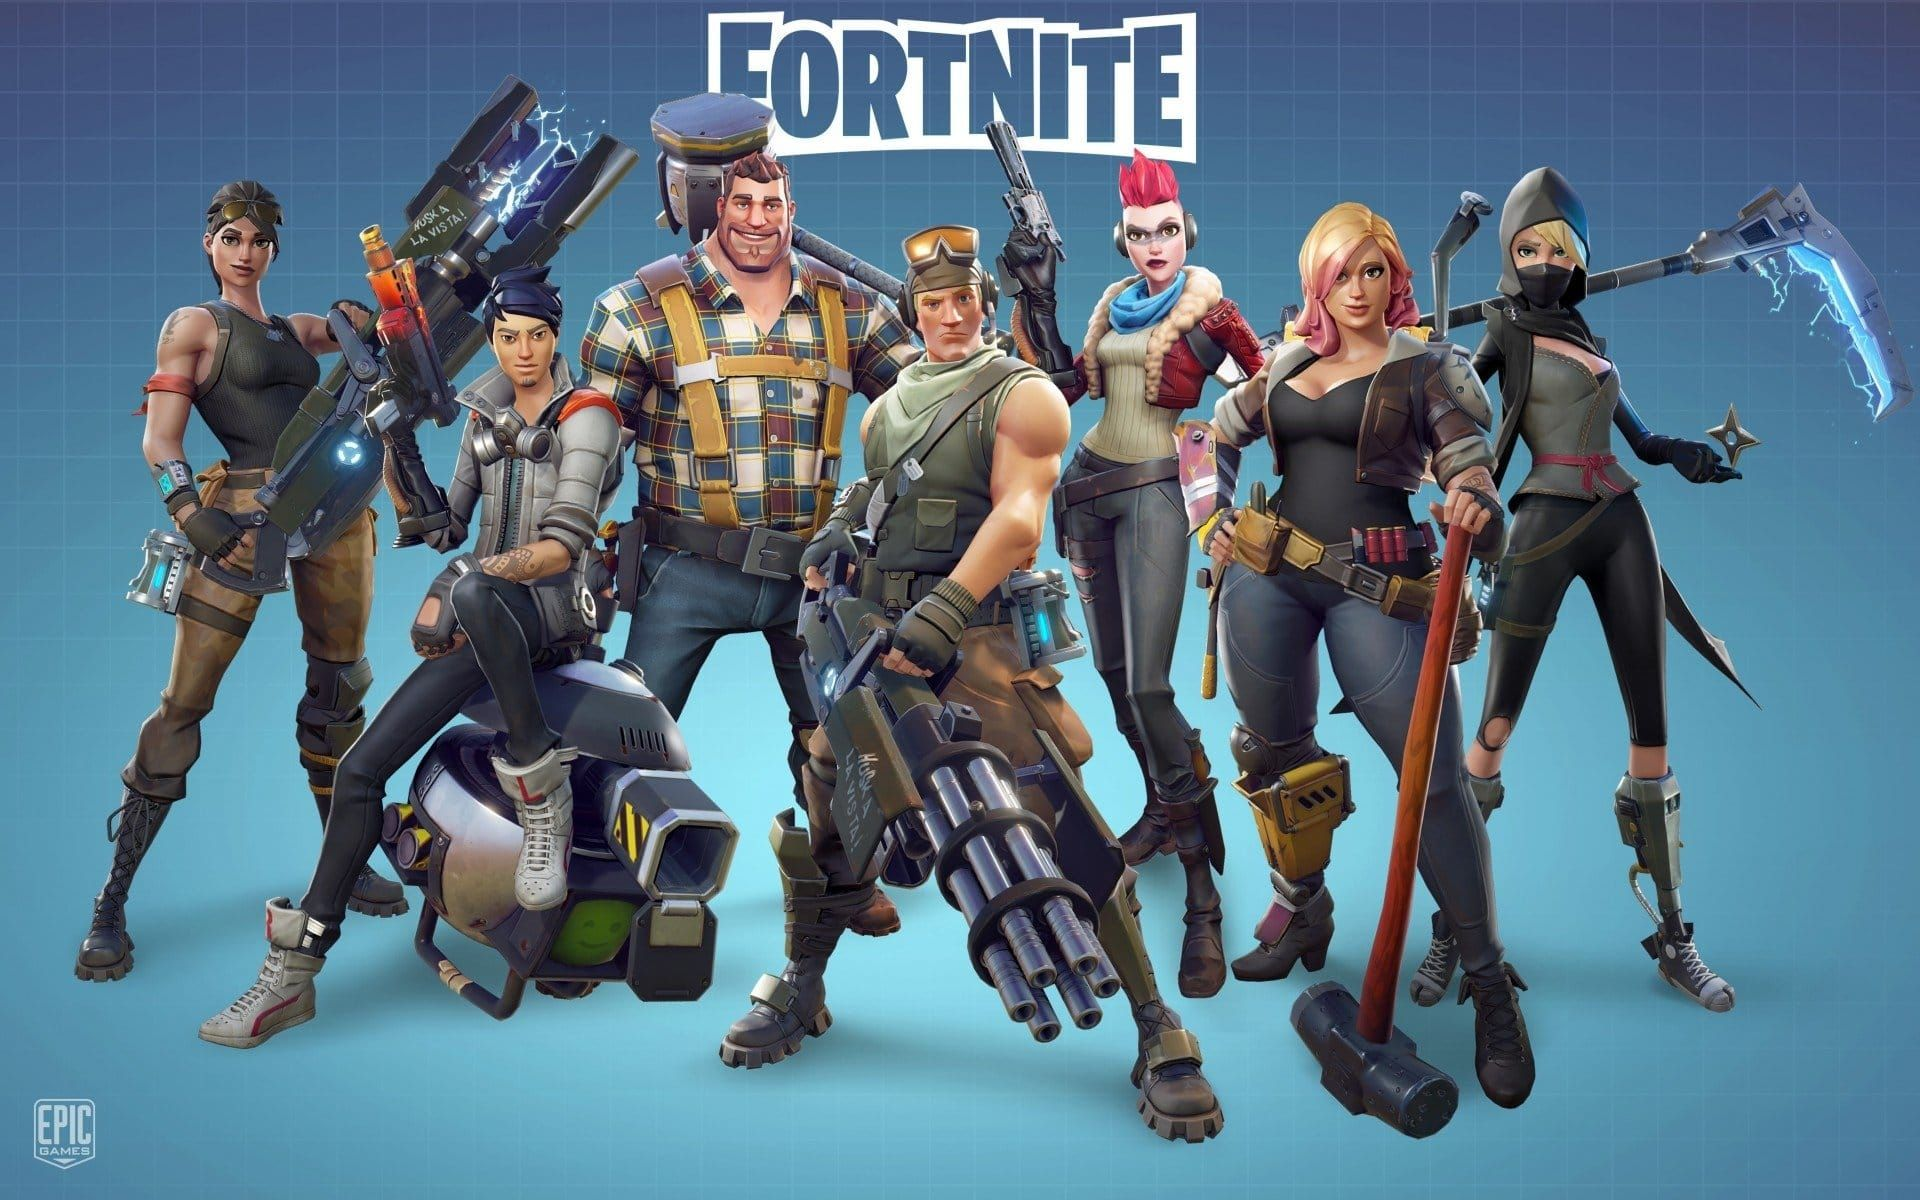 Source Samsung S Fortnite Android Exclusivity To Last Up To 120 Days Fortnite Battle Royale Game Gaming Posters